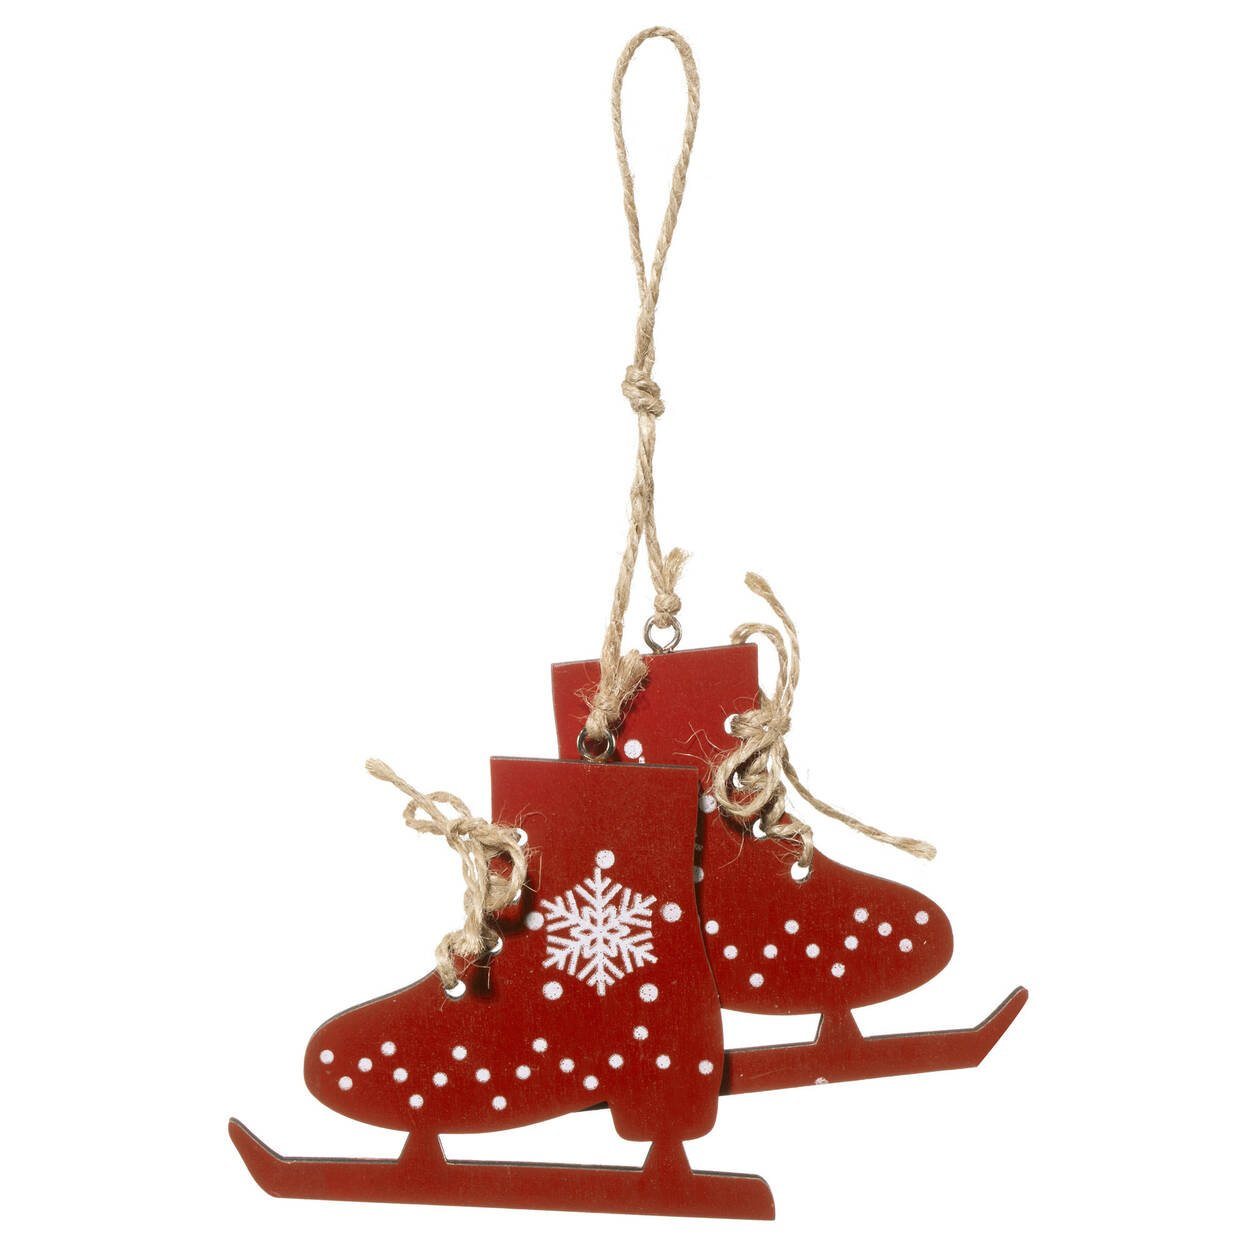 Wooden Skates Ornament | Bouclair.com